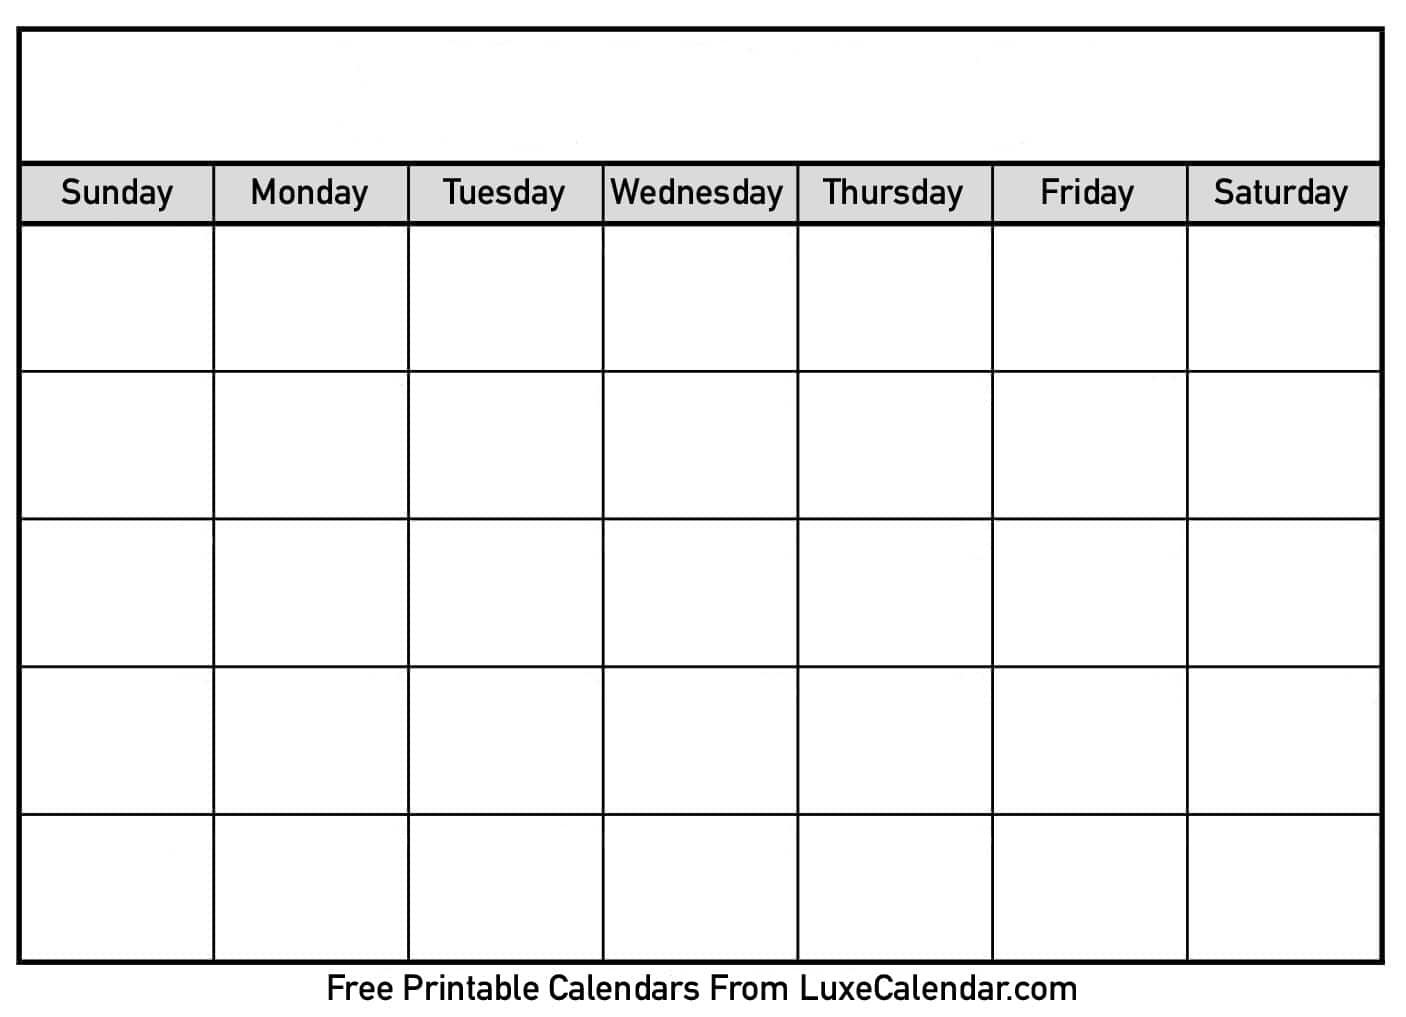 Blank Calendar With Times Ble Luxe Monday Through Friday Weekly Time throughout Monday Through Friday Calendar With Times